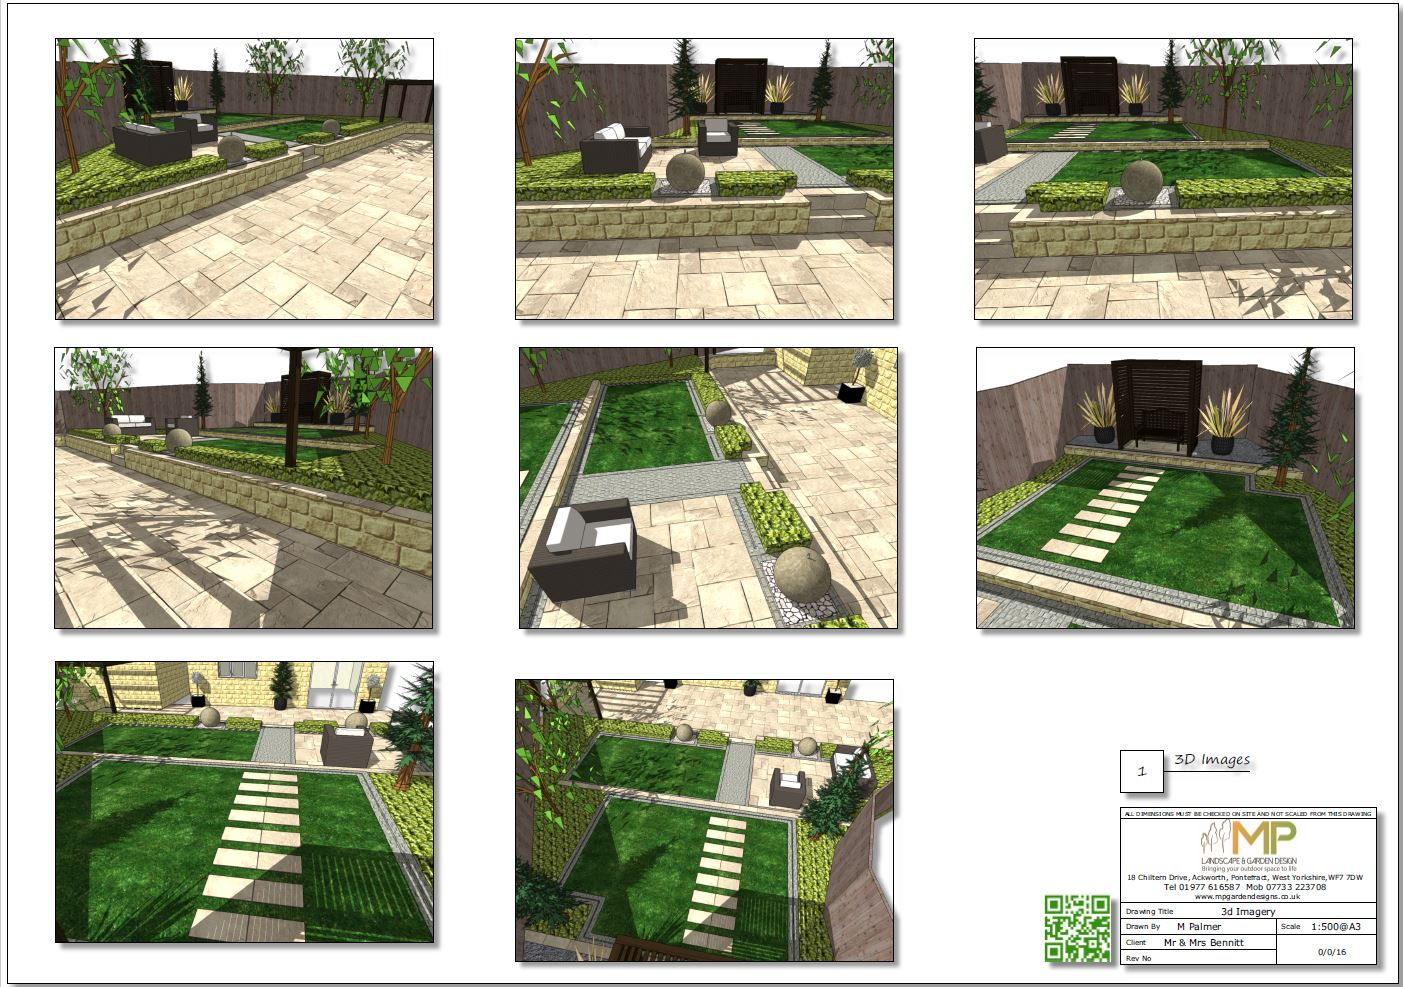 3. 3D images of a concept plan for a new build property in Wakefield.